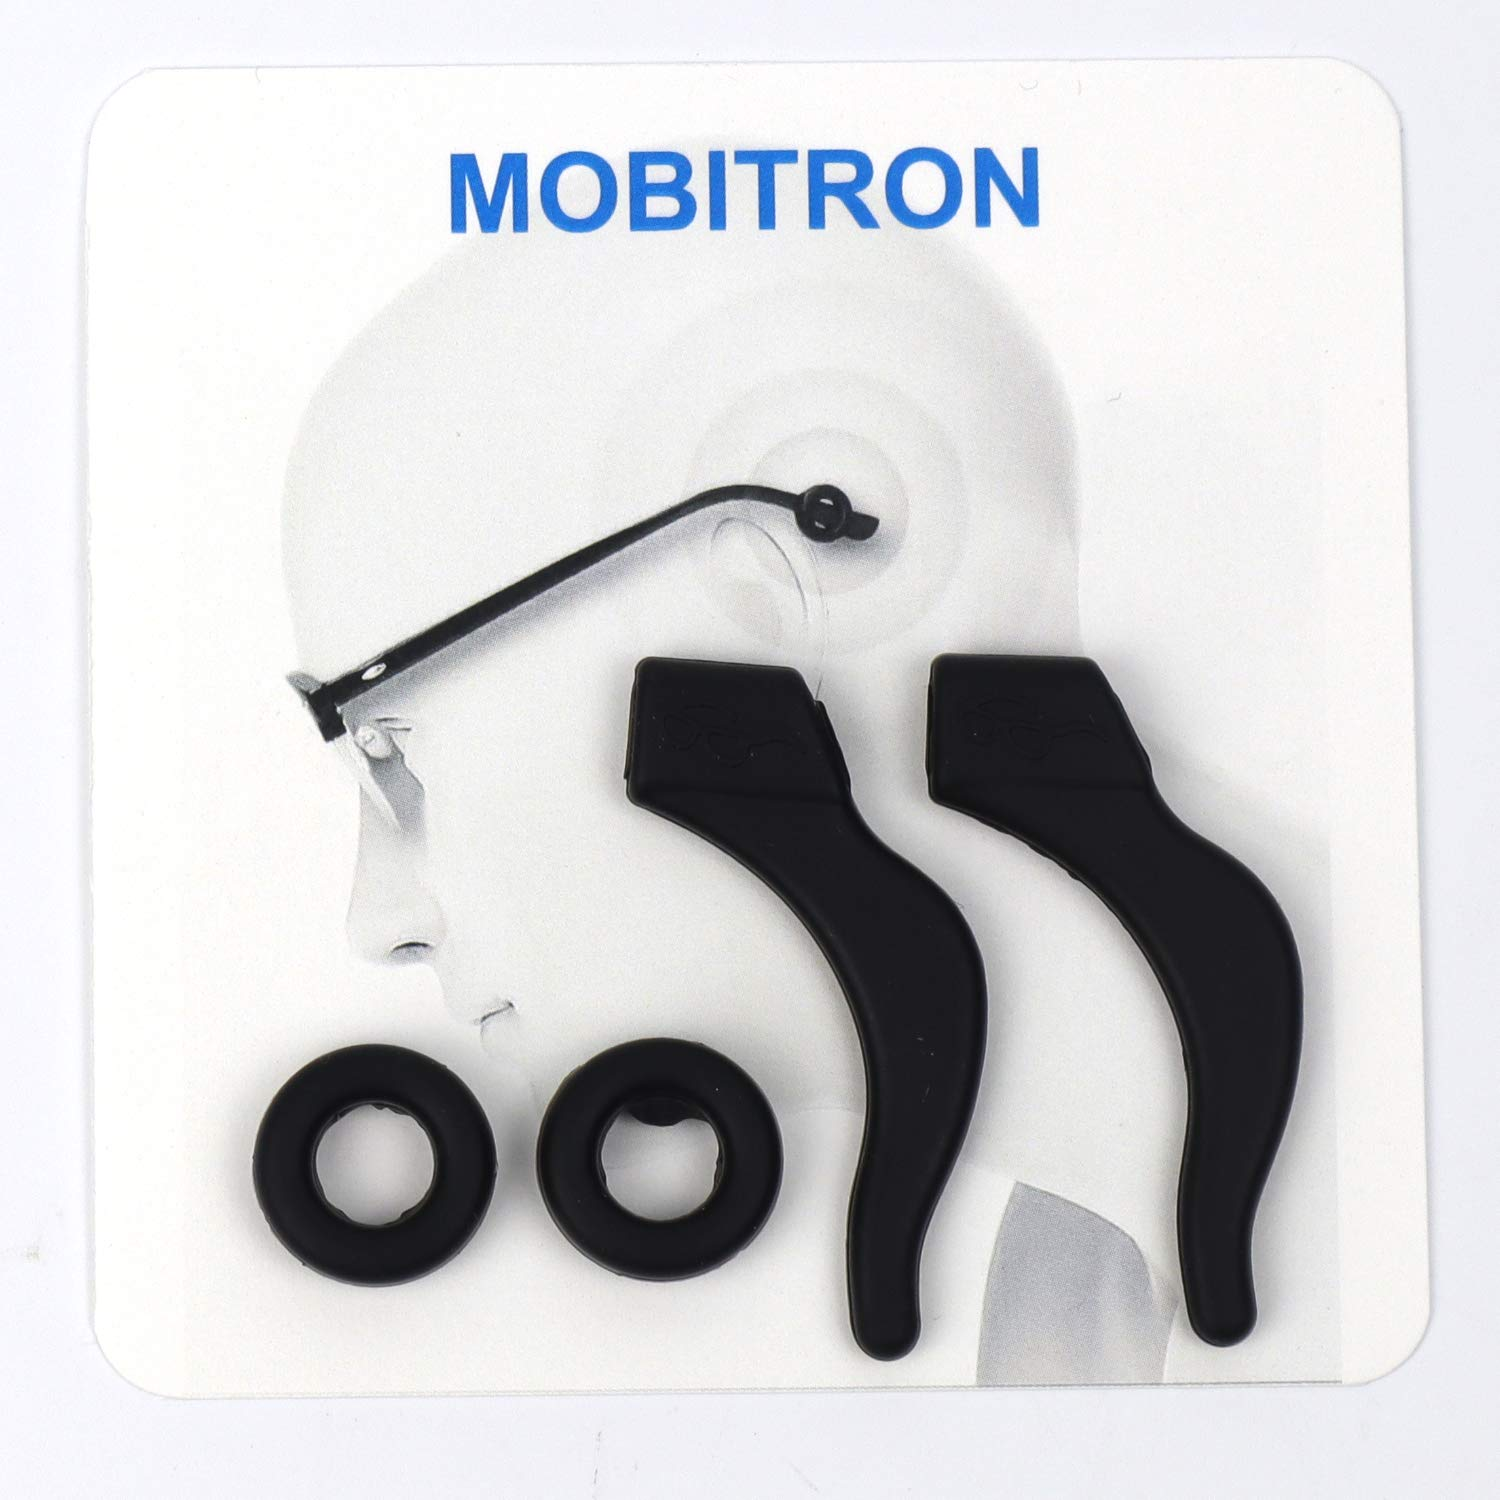 MOBITRON Silicone Eyeglass Retainers, Anti-Slip Elastic Comfort Glasses Retainers for Spectacle Sunglasses, Reading Glasses and Eyewear by MOBITRON